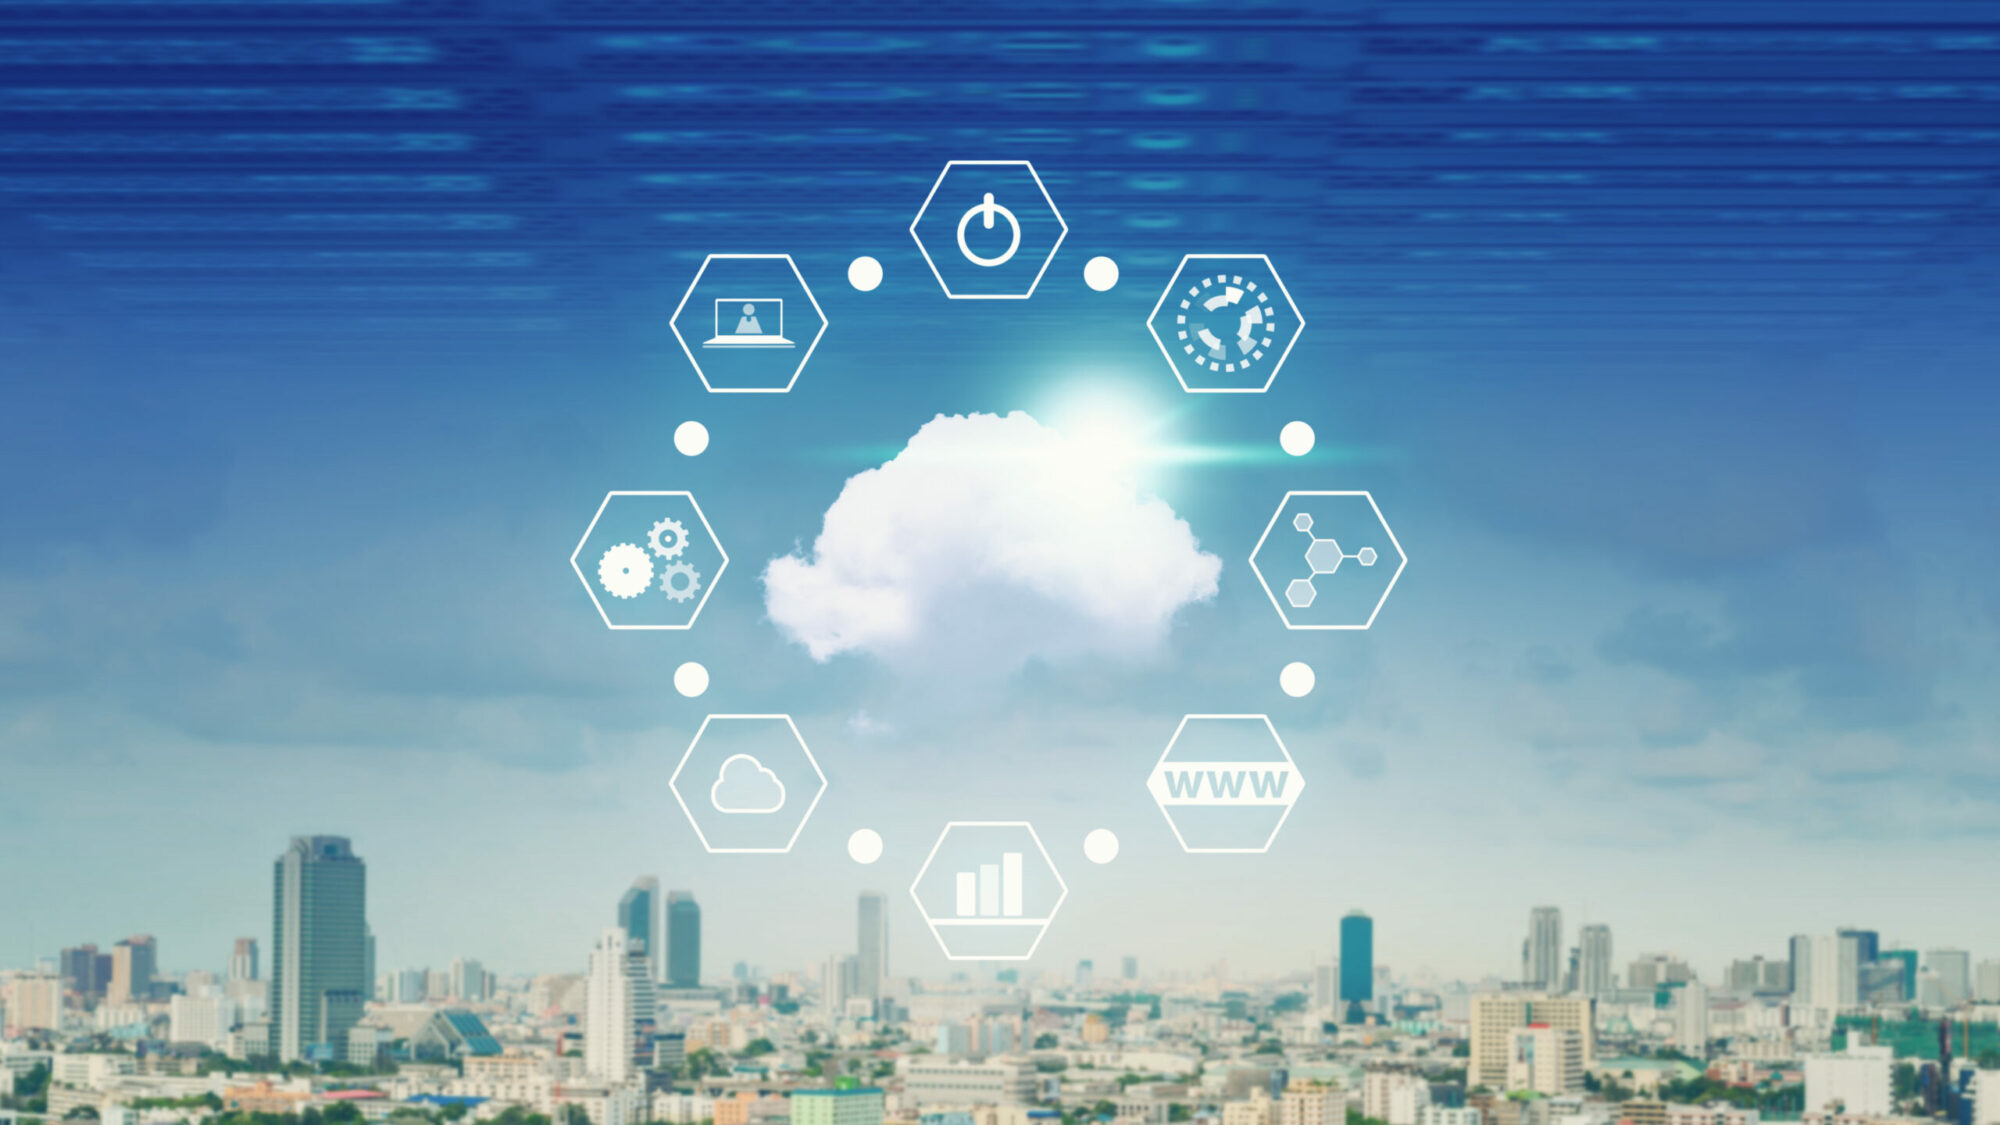 Physical Security in the Cloud and Software as a Service